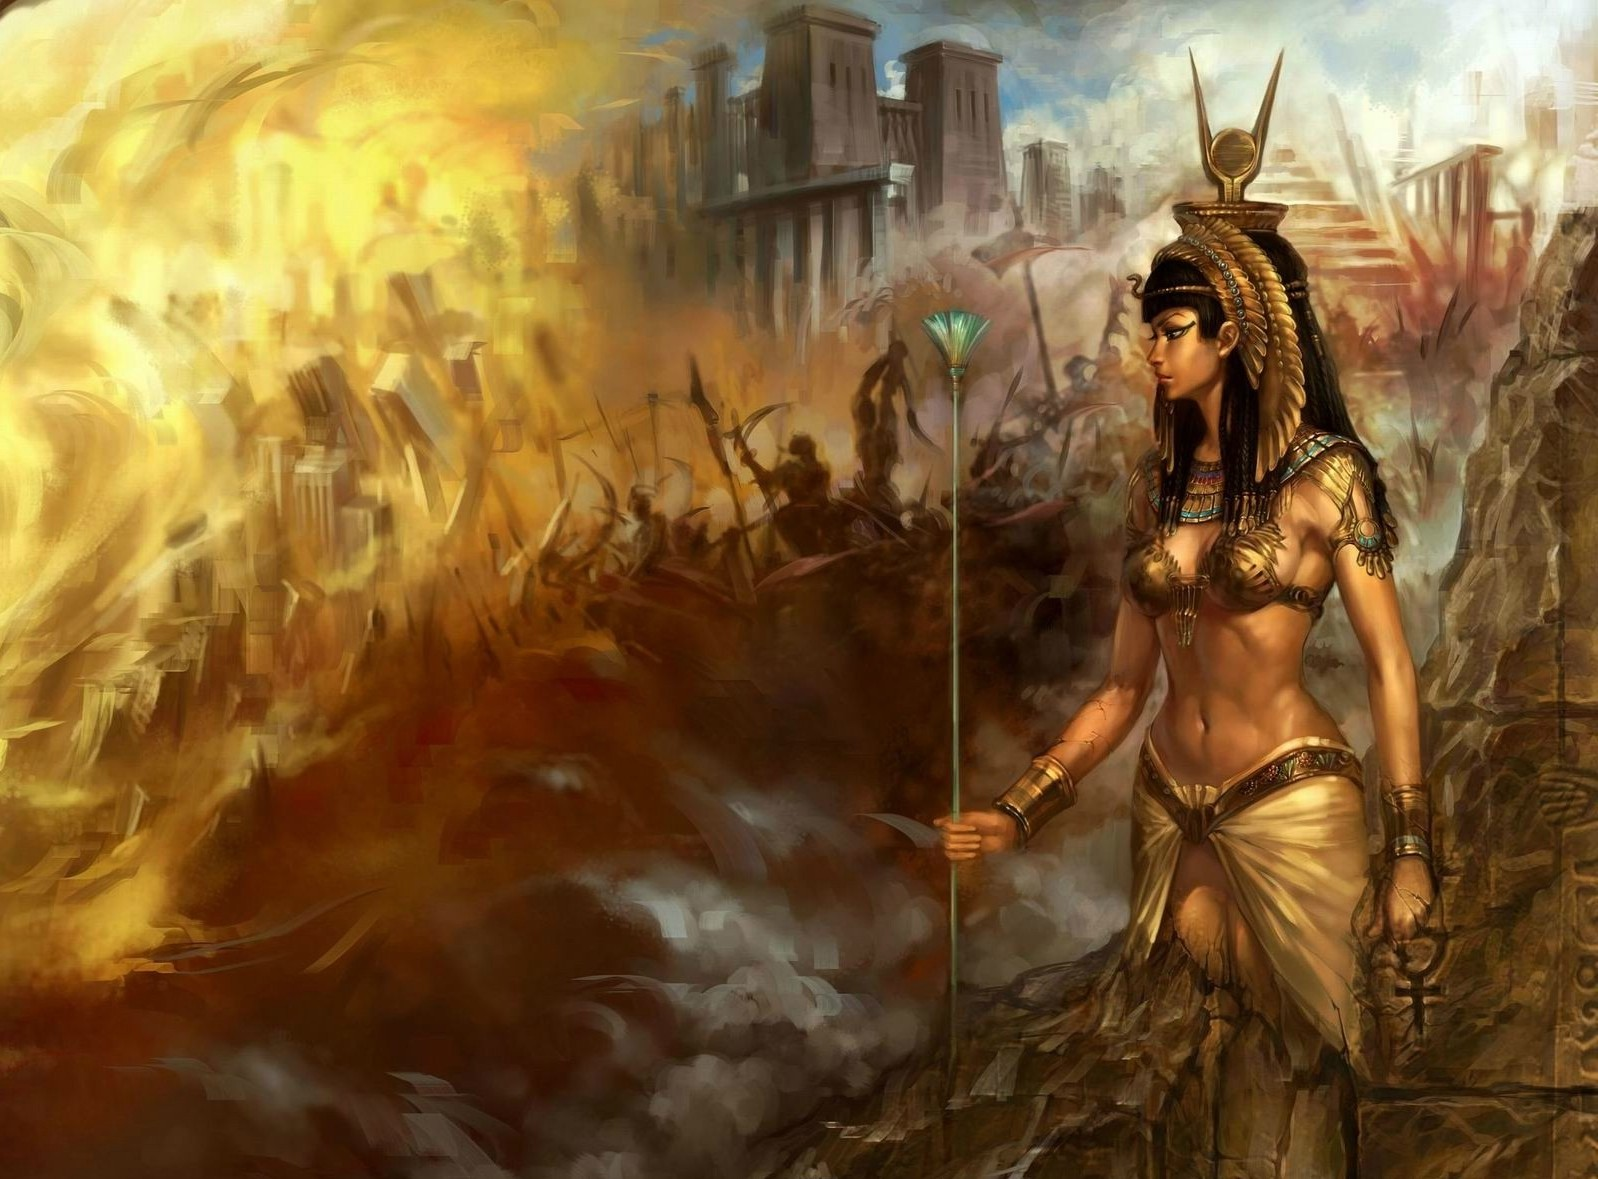 Samsung Mobile Hd Wallpapers Free Download Fantasy Art Artwork Egyptian Wallpapers Hd Desktop And